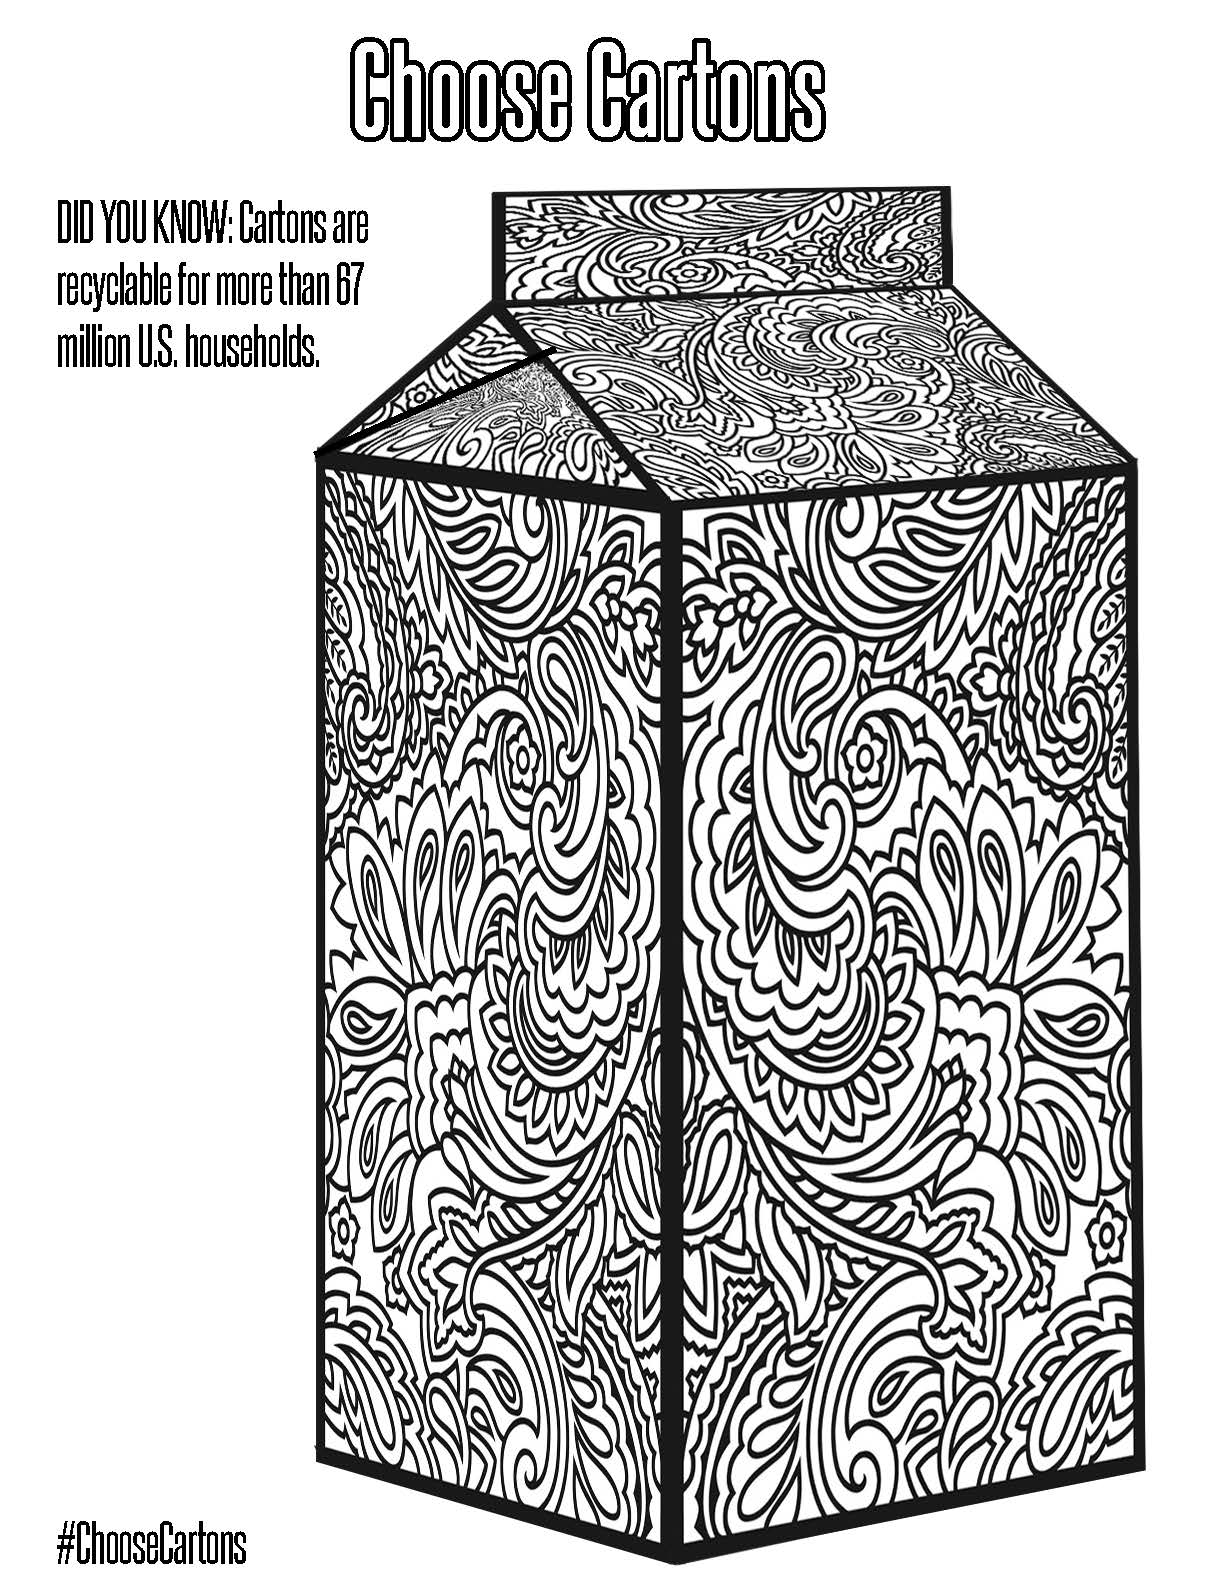 Adulting coloring pages ~ Carton Printable Coloring Pages | ChooseCartons